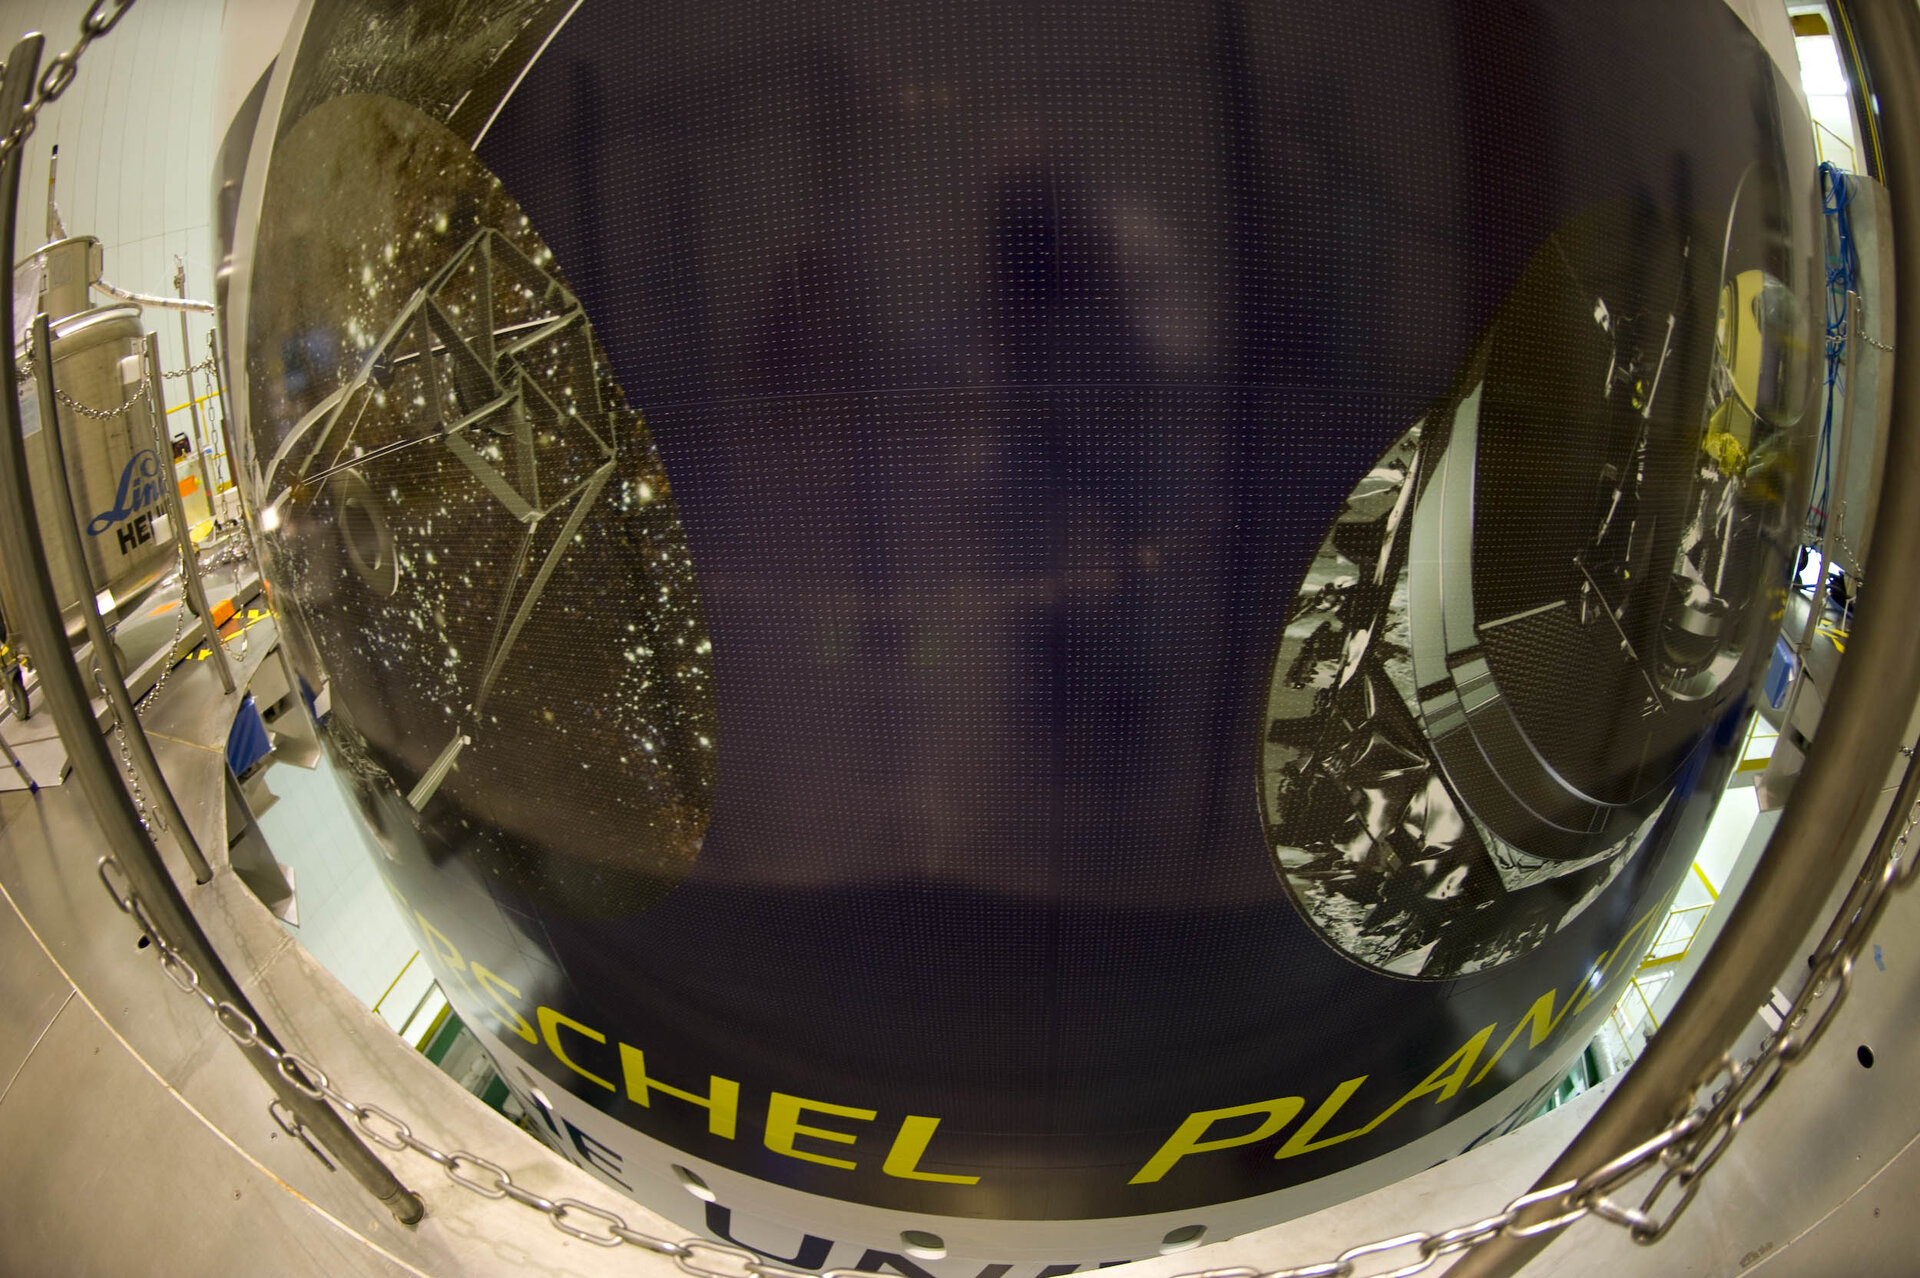 Fairing of the Ariane 5 carrying Herschel and Planck